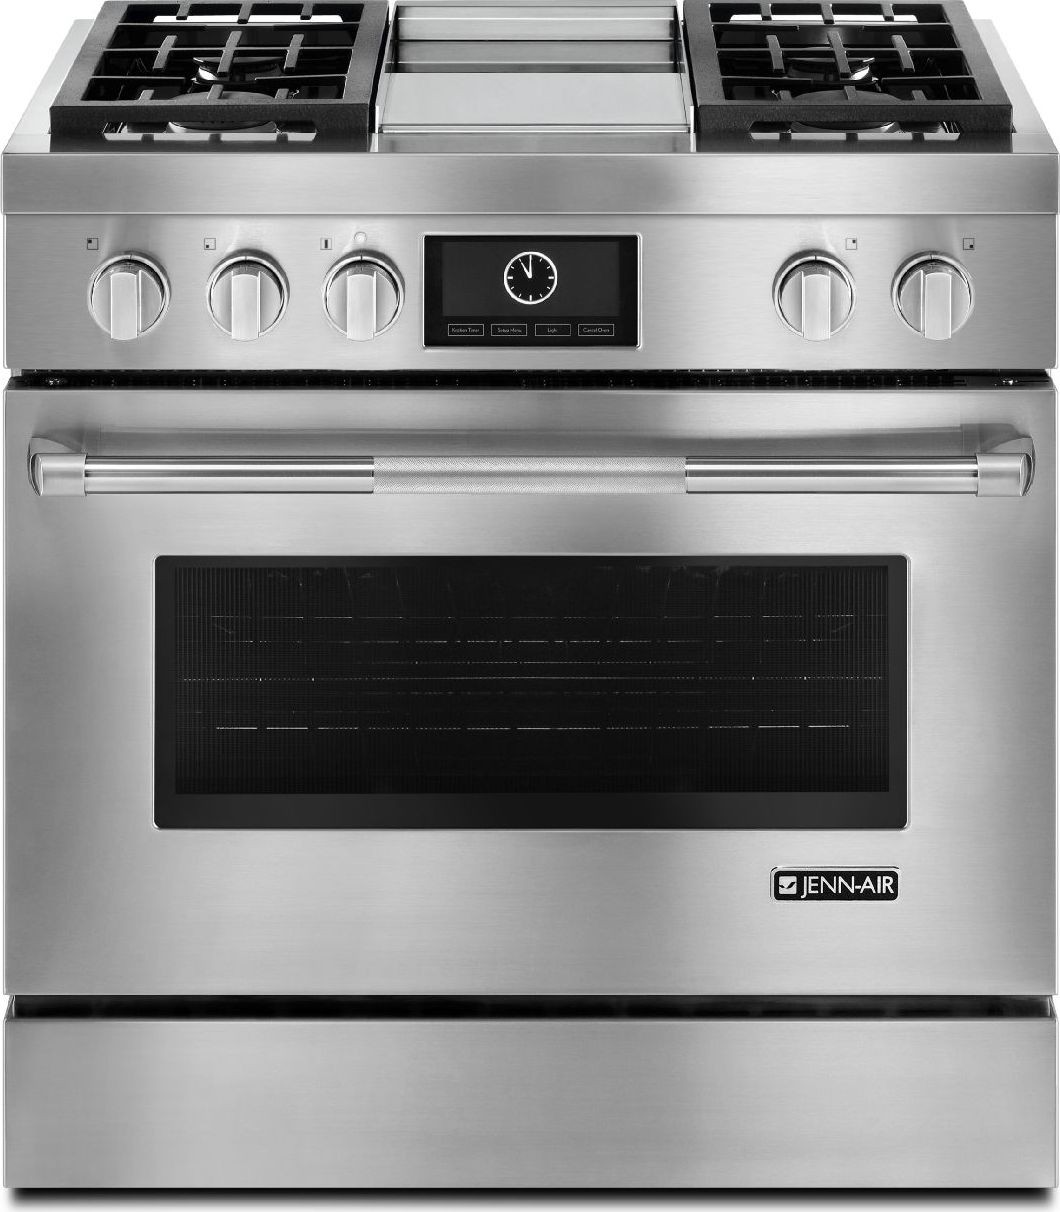 Stove With Griddle In The Middle ~ Jdrp wp jenn air quot touch screen dual fuel range w